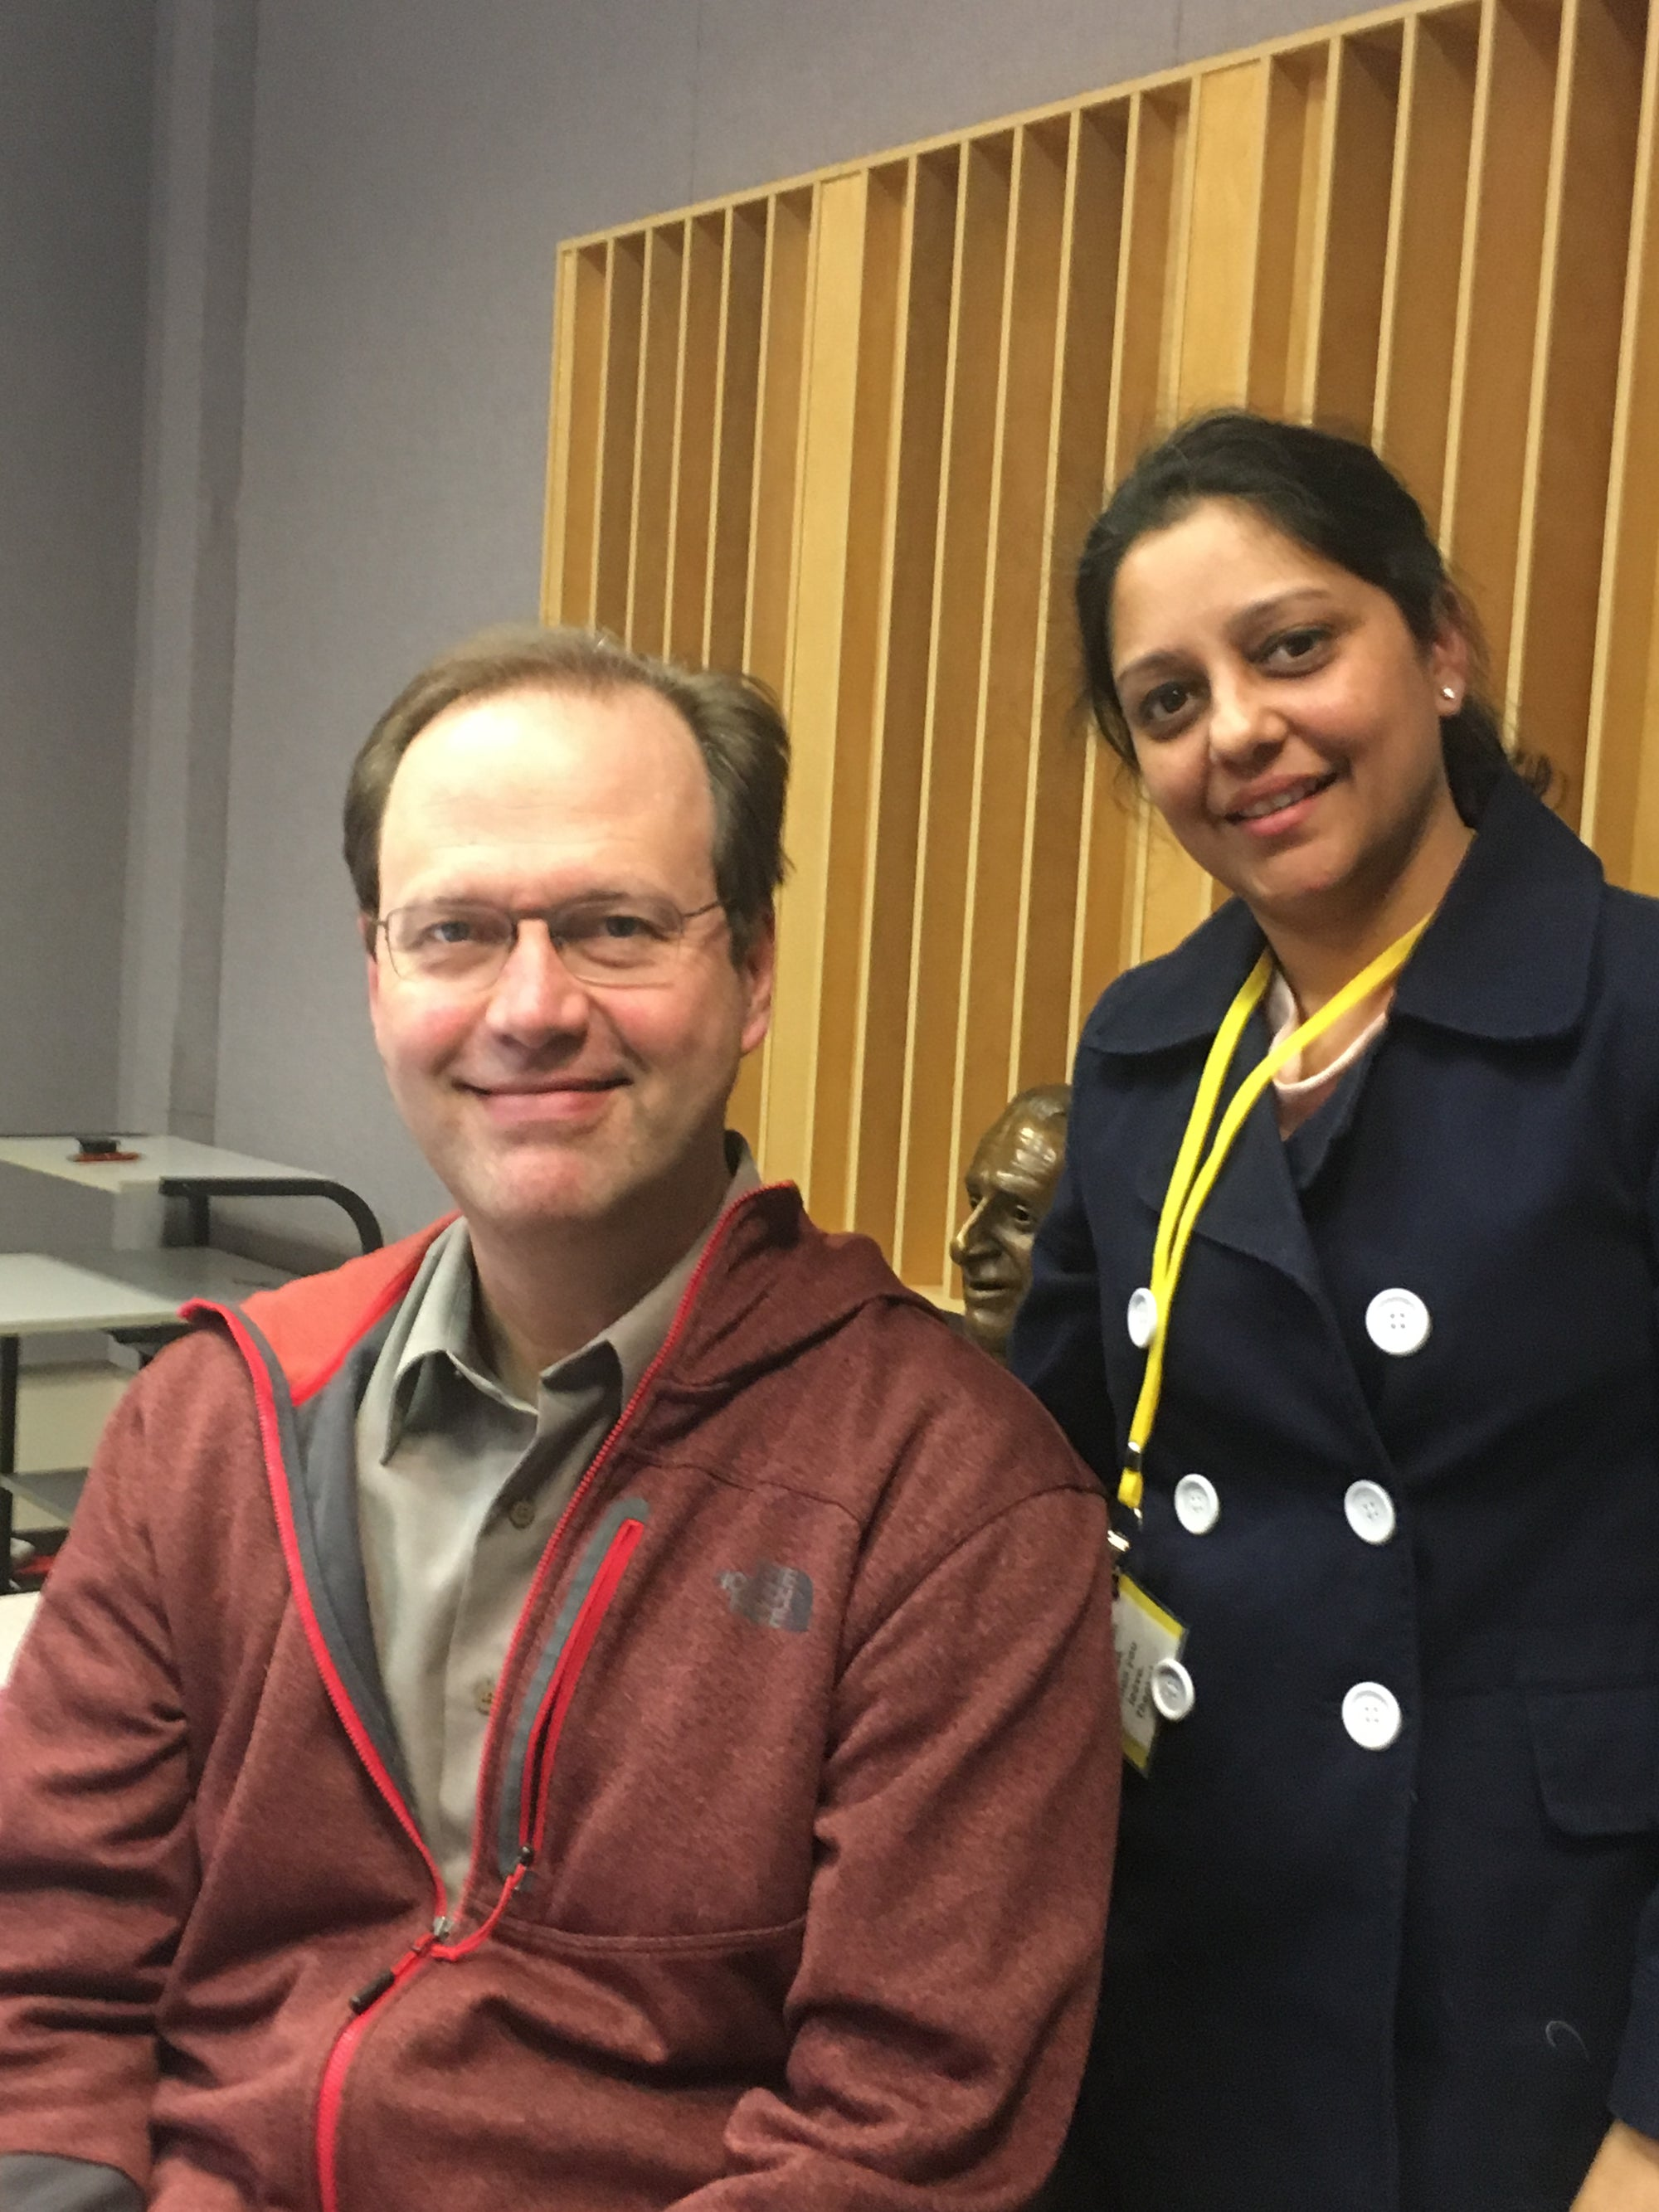 Manvee Vaid founder of Terra Klay with host of WBEZ Worldview Jerome McDonnell